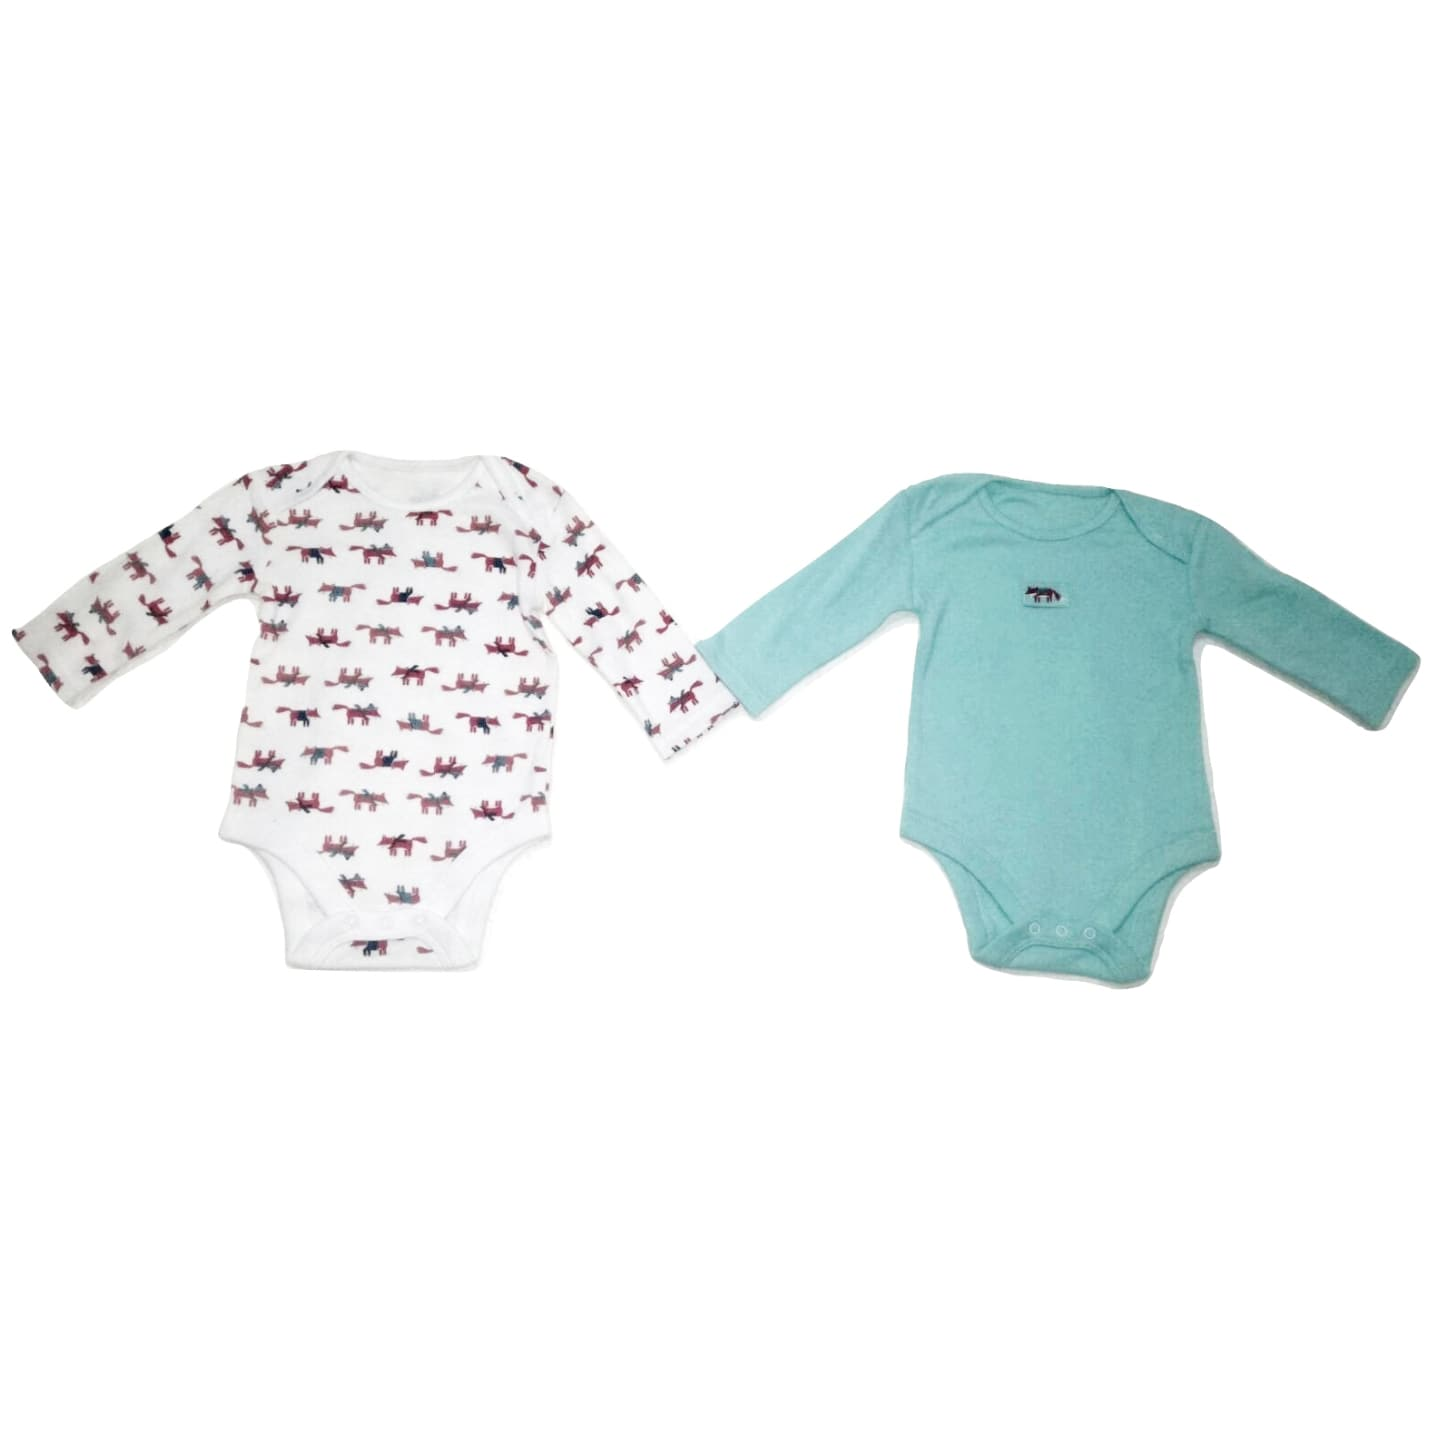 Red Fox design Longsleeve Bodysuit (White Multi & Turquoise) - 2 Piece